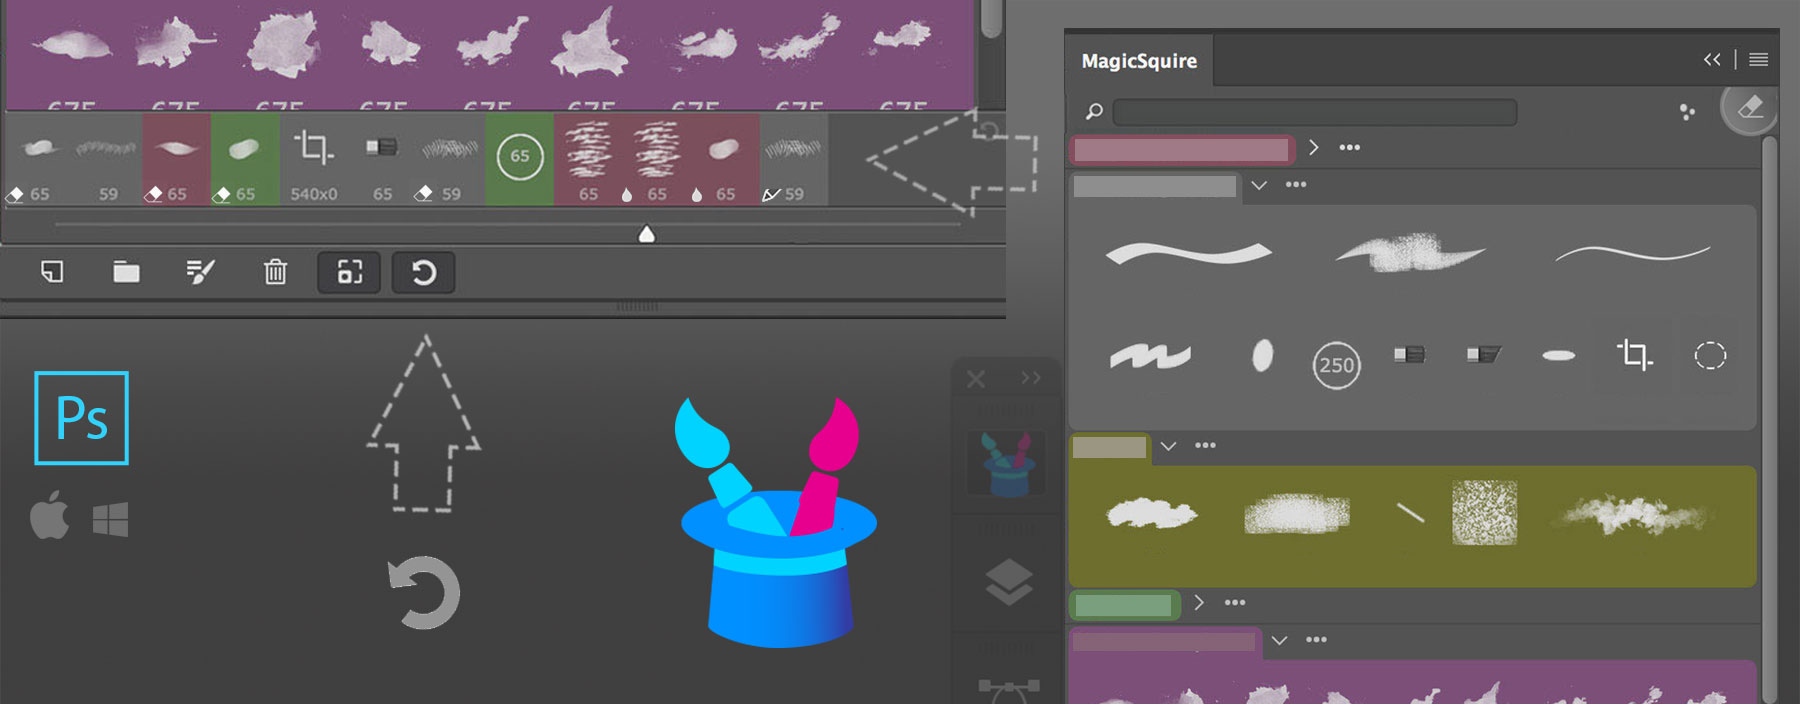 MagicSquire brush manager - detailed Tool History in Photoshop